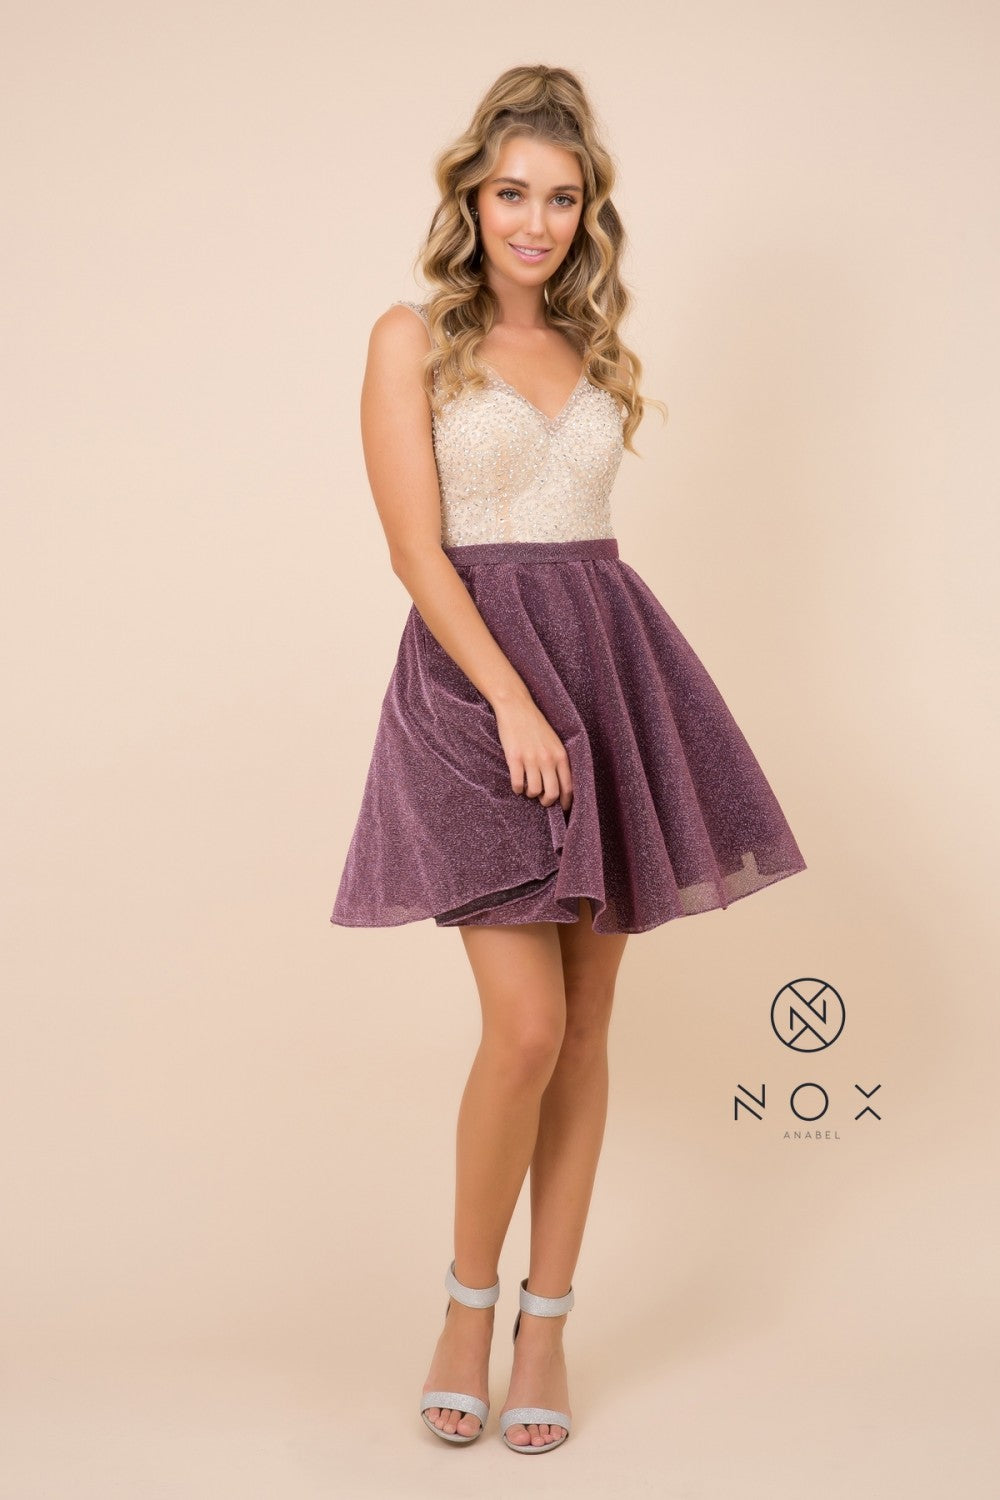 N Y692 - Short Homecoming A-Line Gown with Metallic Glitter Skirt & Beaded Bodice - Diggz Prom